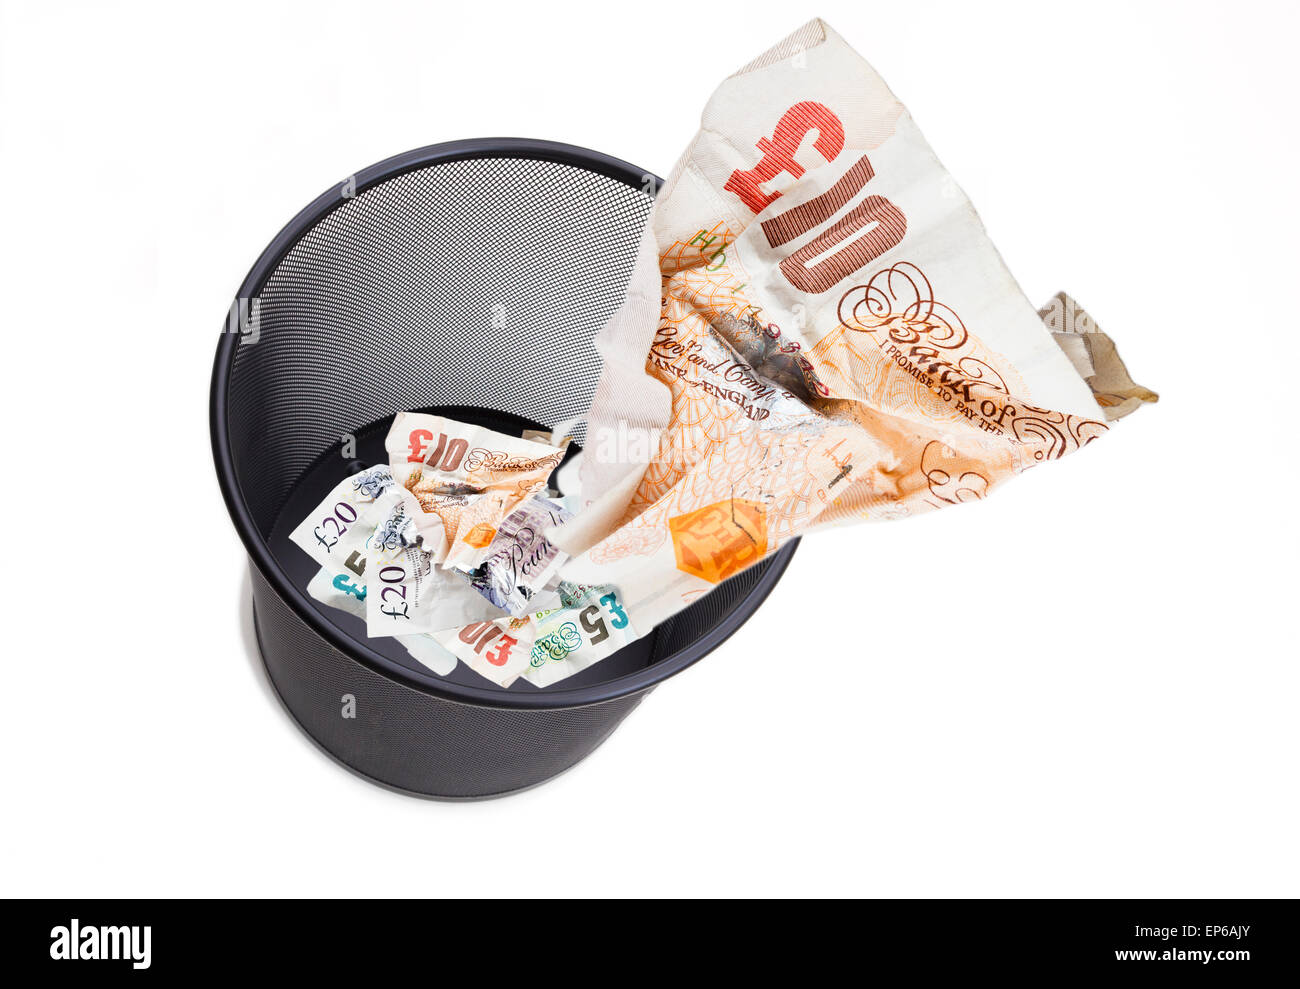 Image of £10 note screwed up being thrown away in a wastepaper bin on white to illustrate wasting pounds GBP - Stock Image